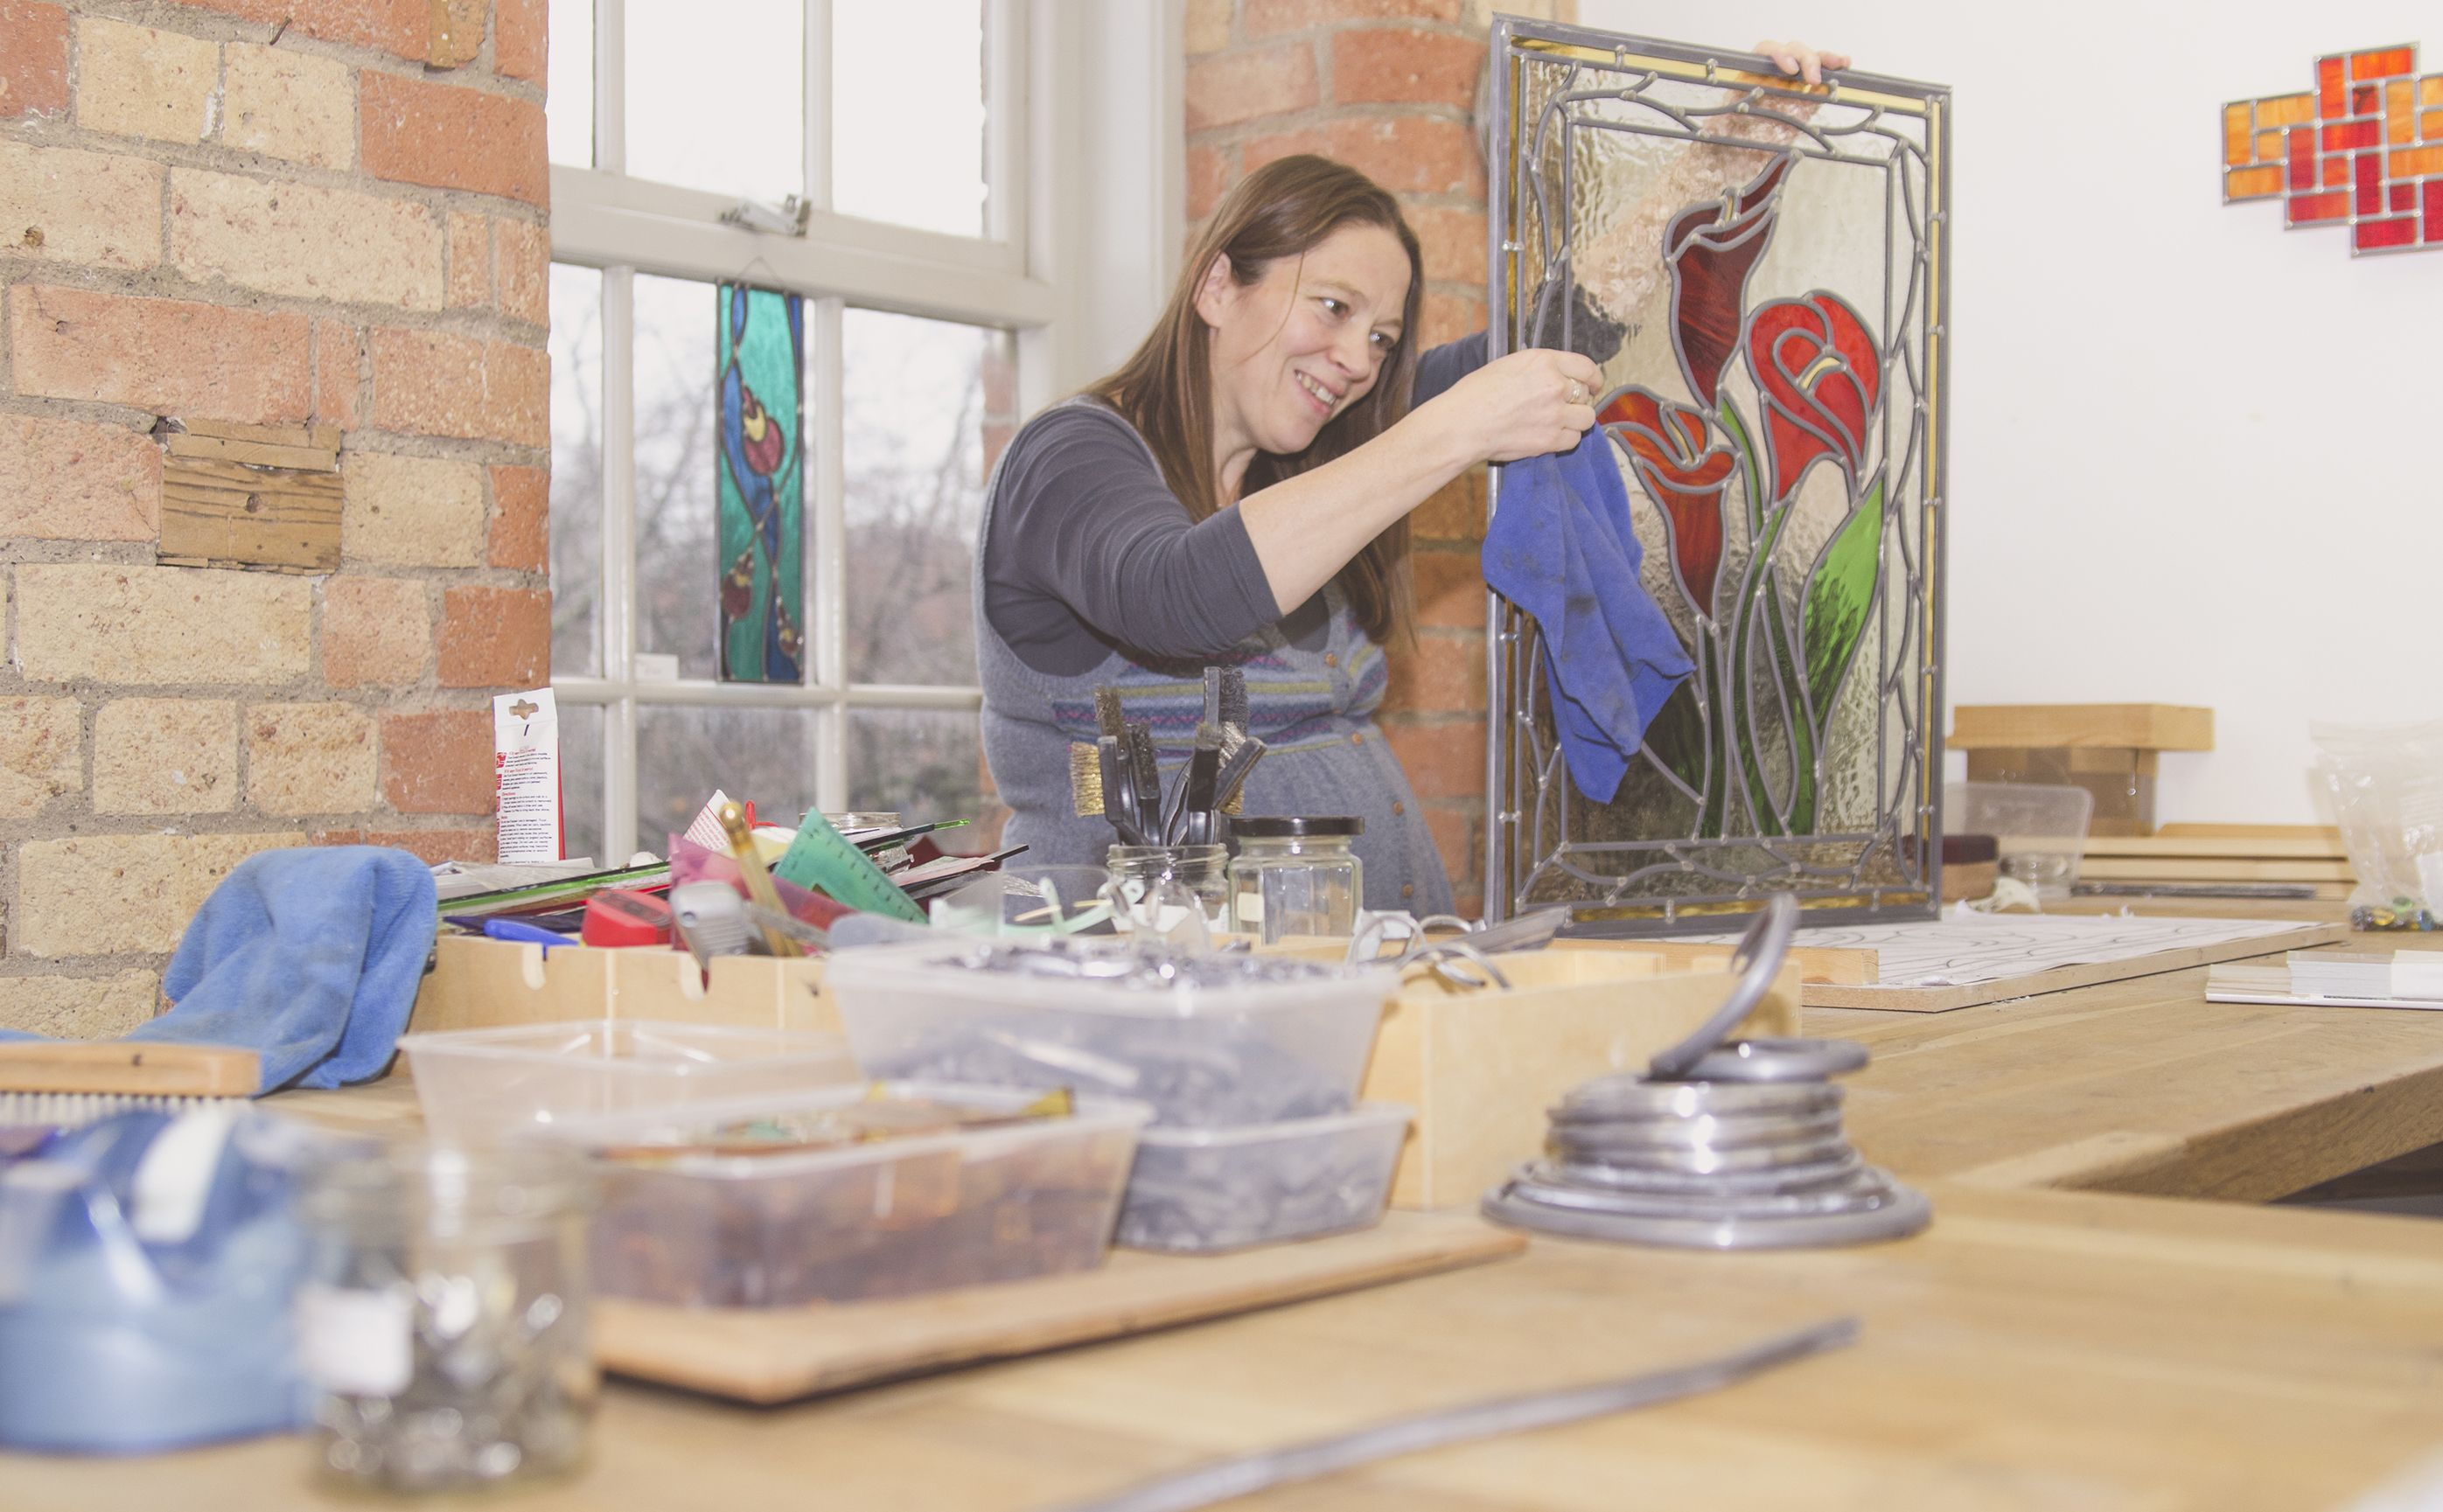 OS 2014 - Lyanne McCredie, stained glass artist studio.  Photography by Leon William Vann